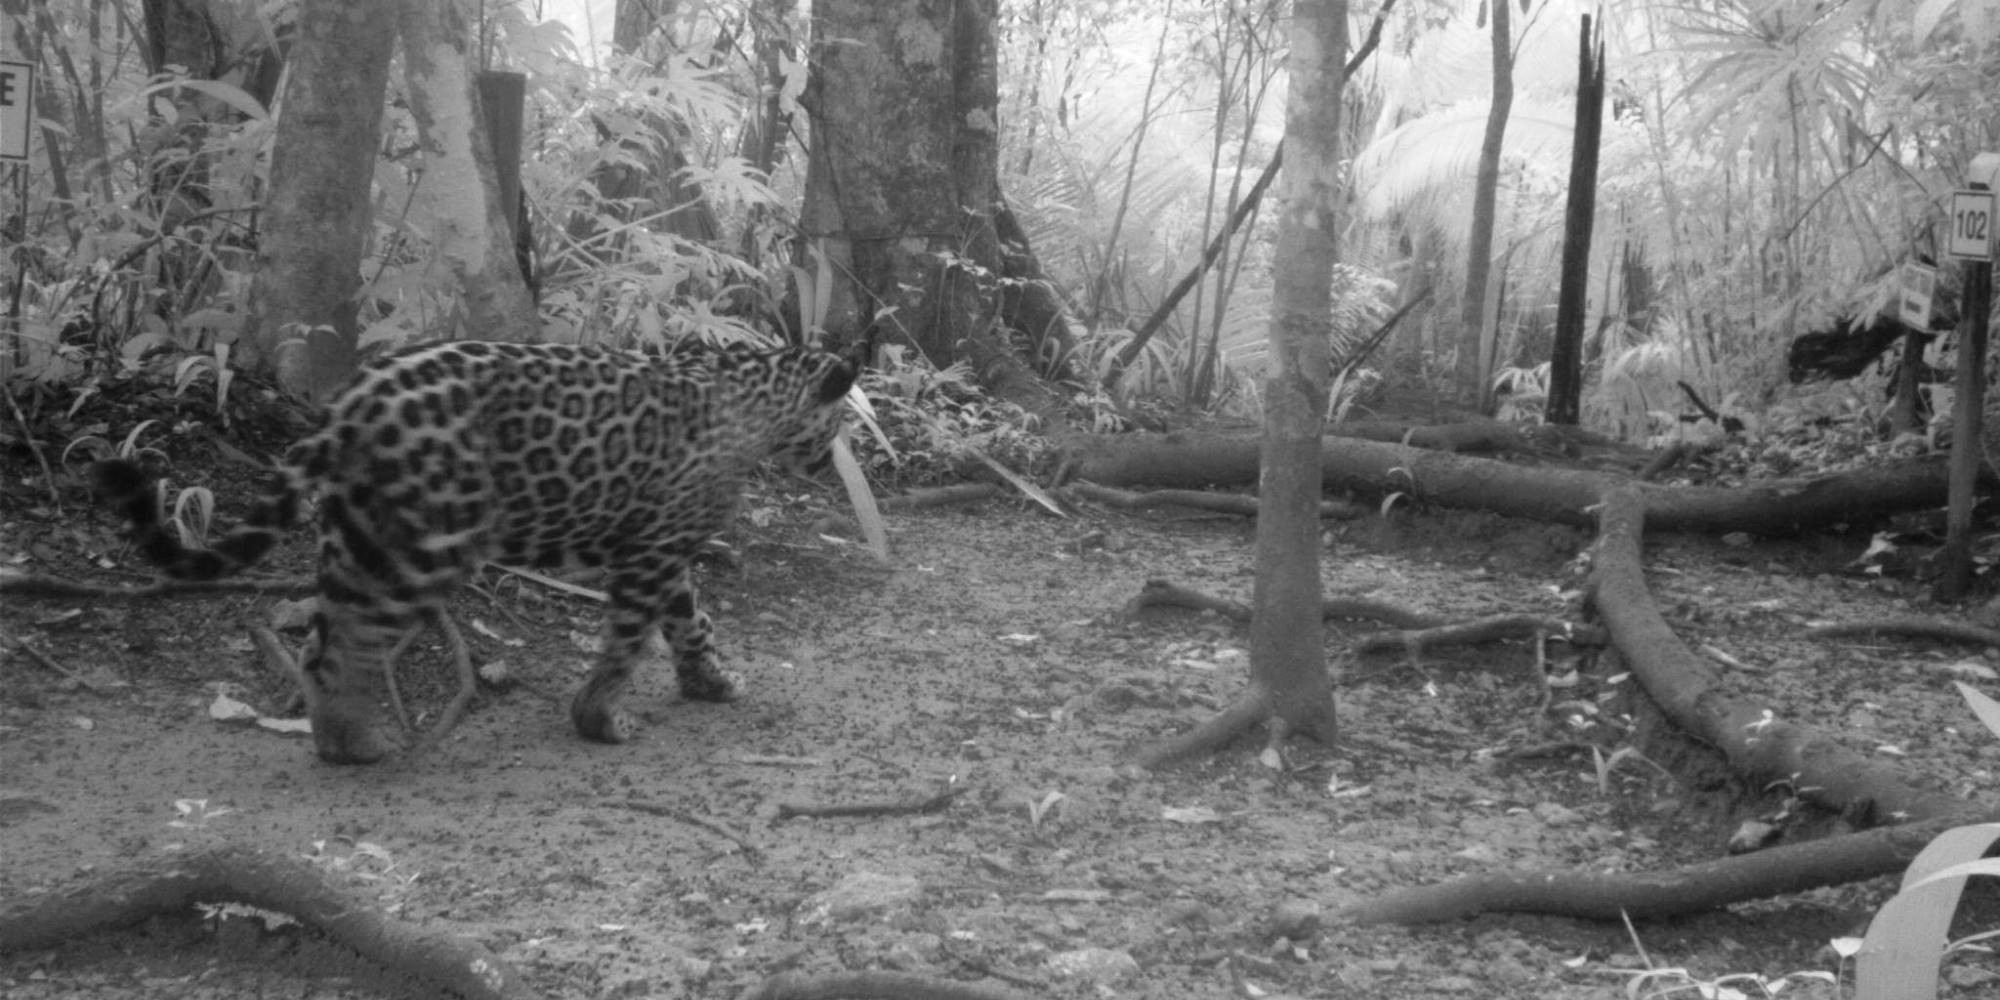 Phototrap shot of jaguar near Chan Chich Lodge